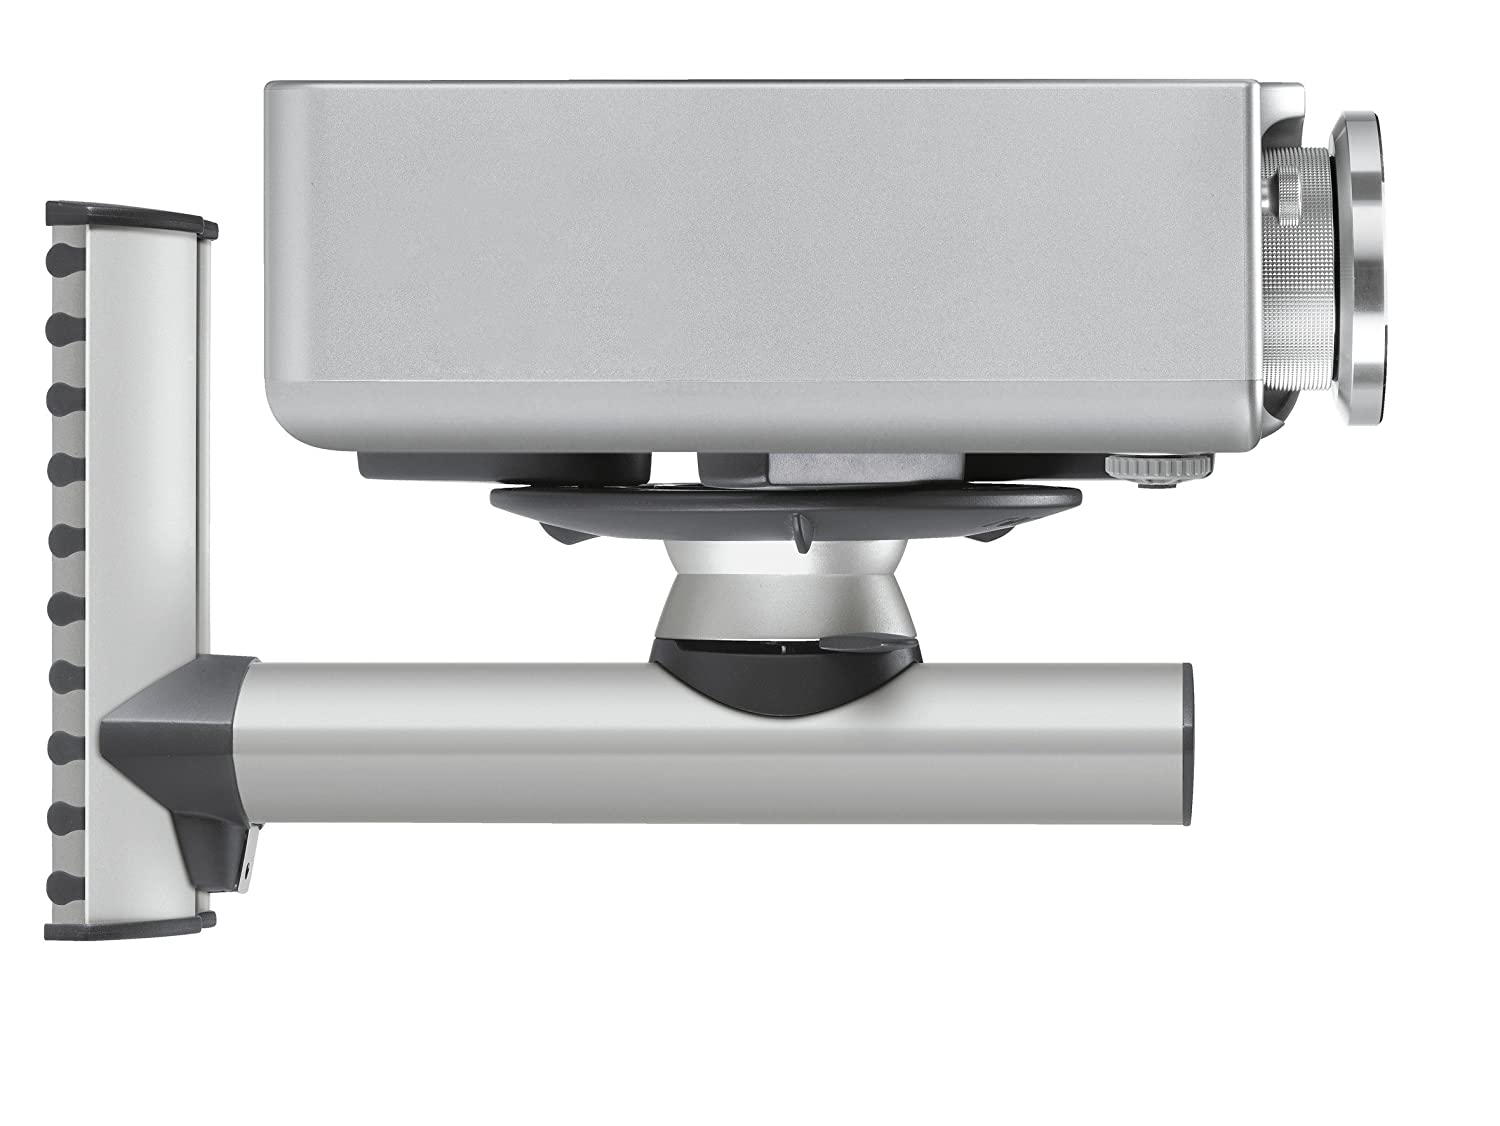 Universal Swivel and Tilt EPW 6565 Bracket for projectors max 22 lbs Black//Silver Vogels Projector Wall Mount